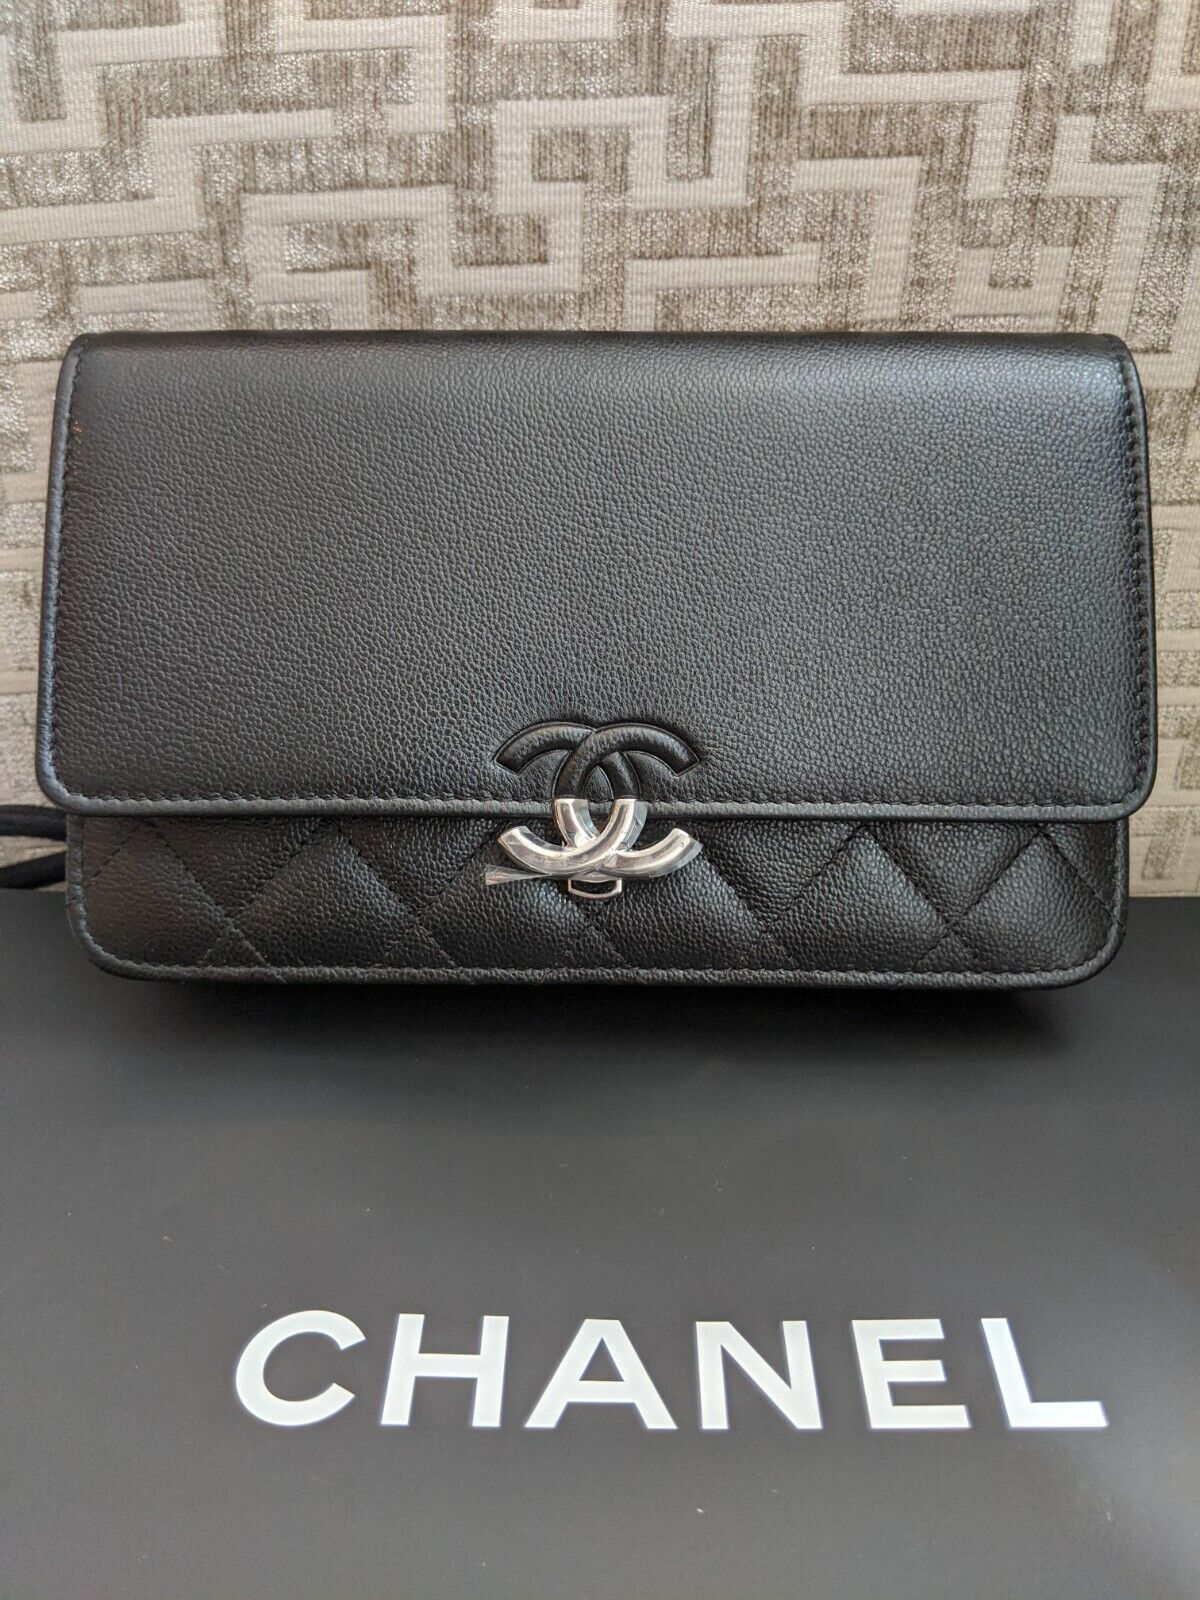 BNWT Chanel Wallet on Chain WoC Black Grained Calf Leather Cross Body Bag